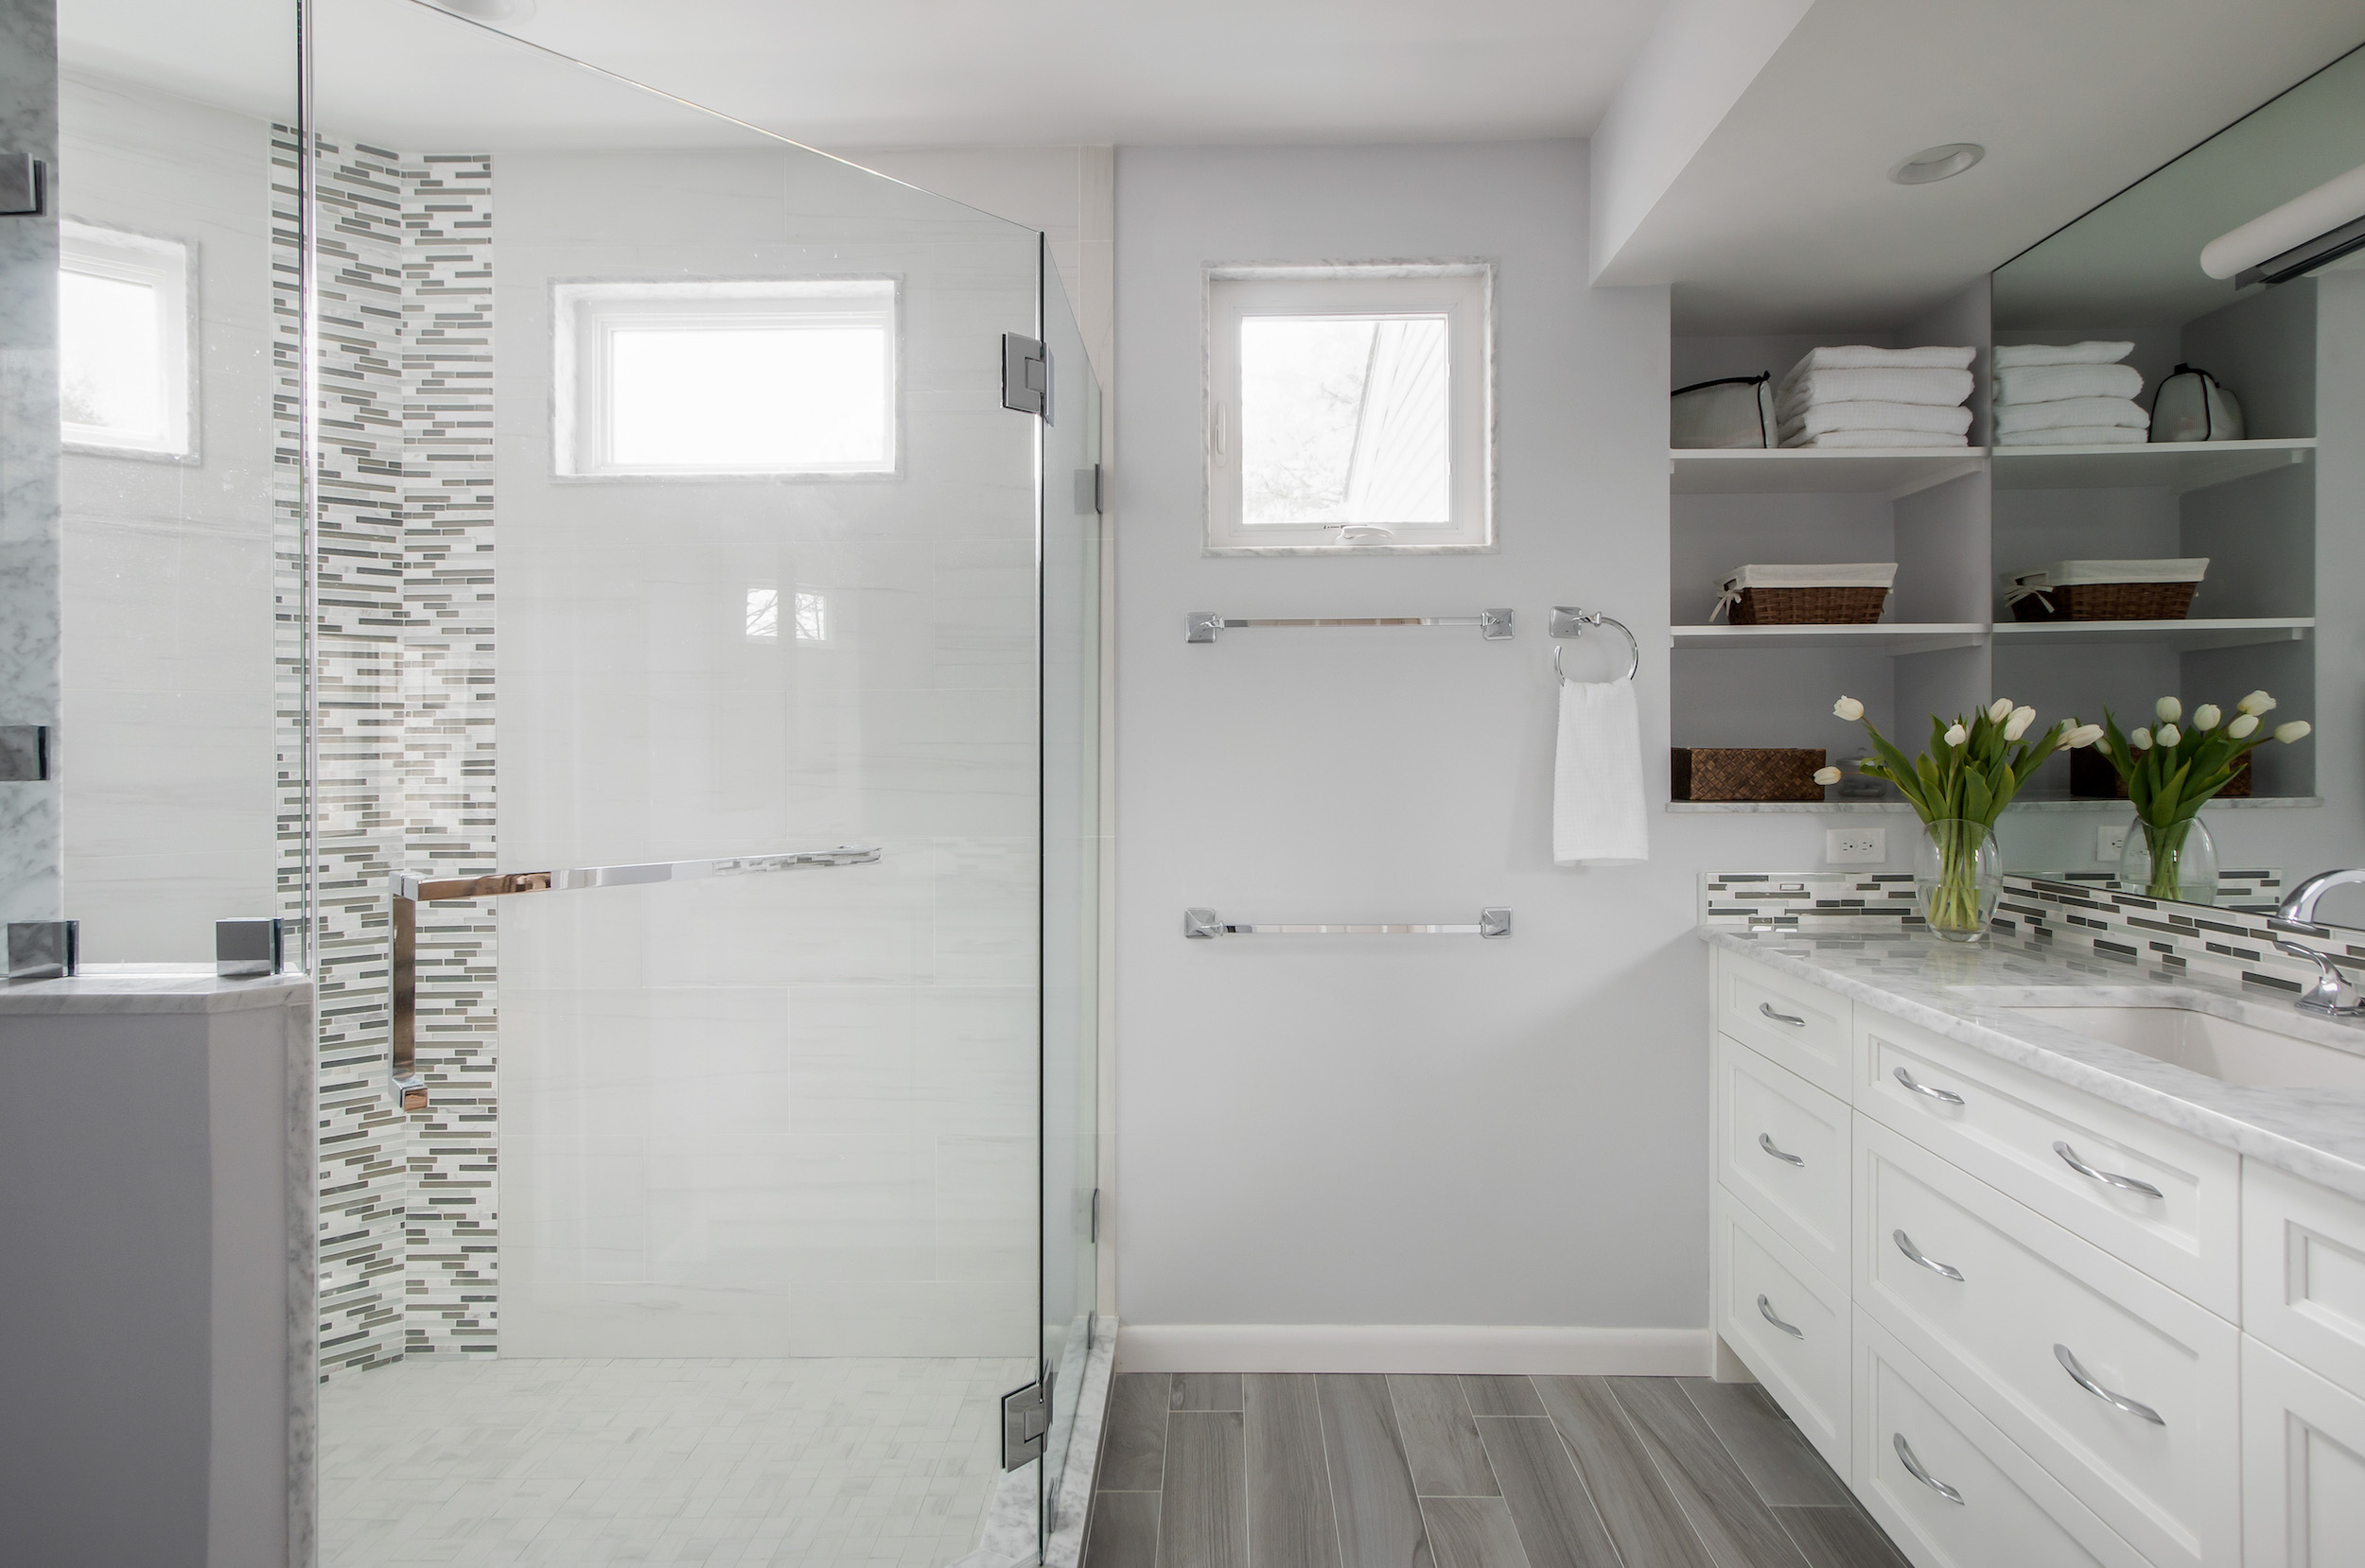 8-KitchenVisions-Redesigned-Master-Baths-Waban.jpg